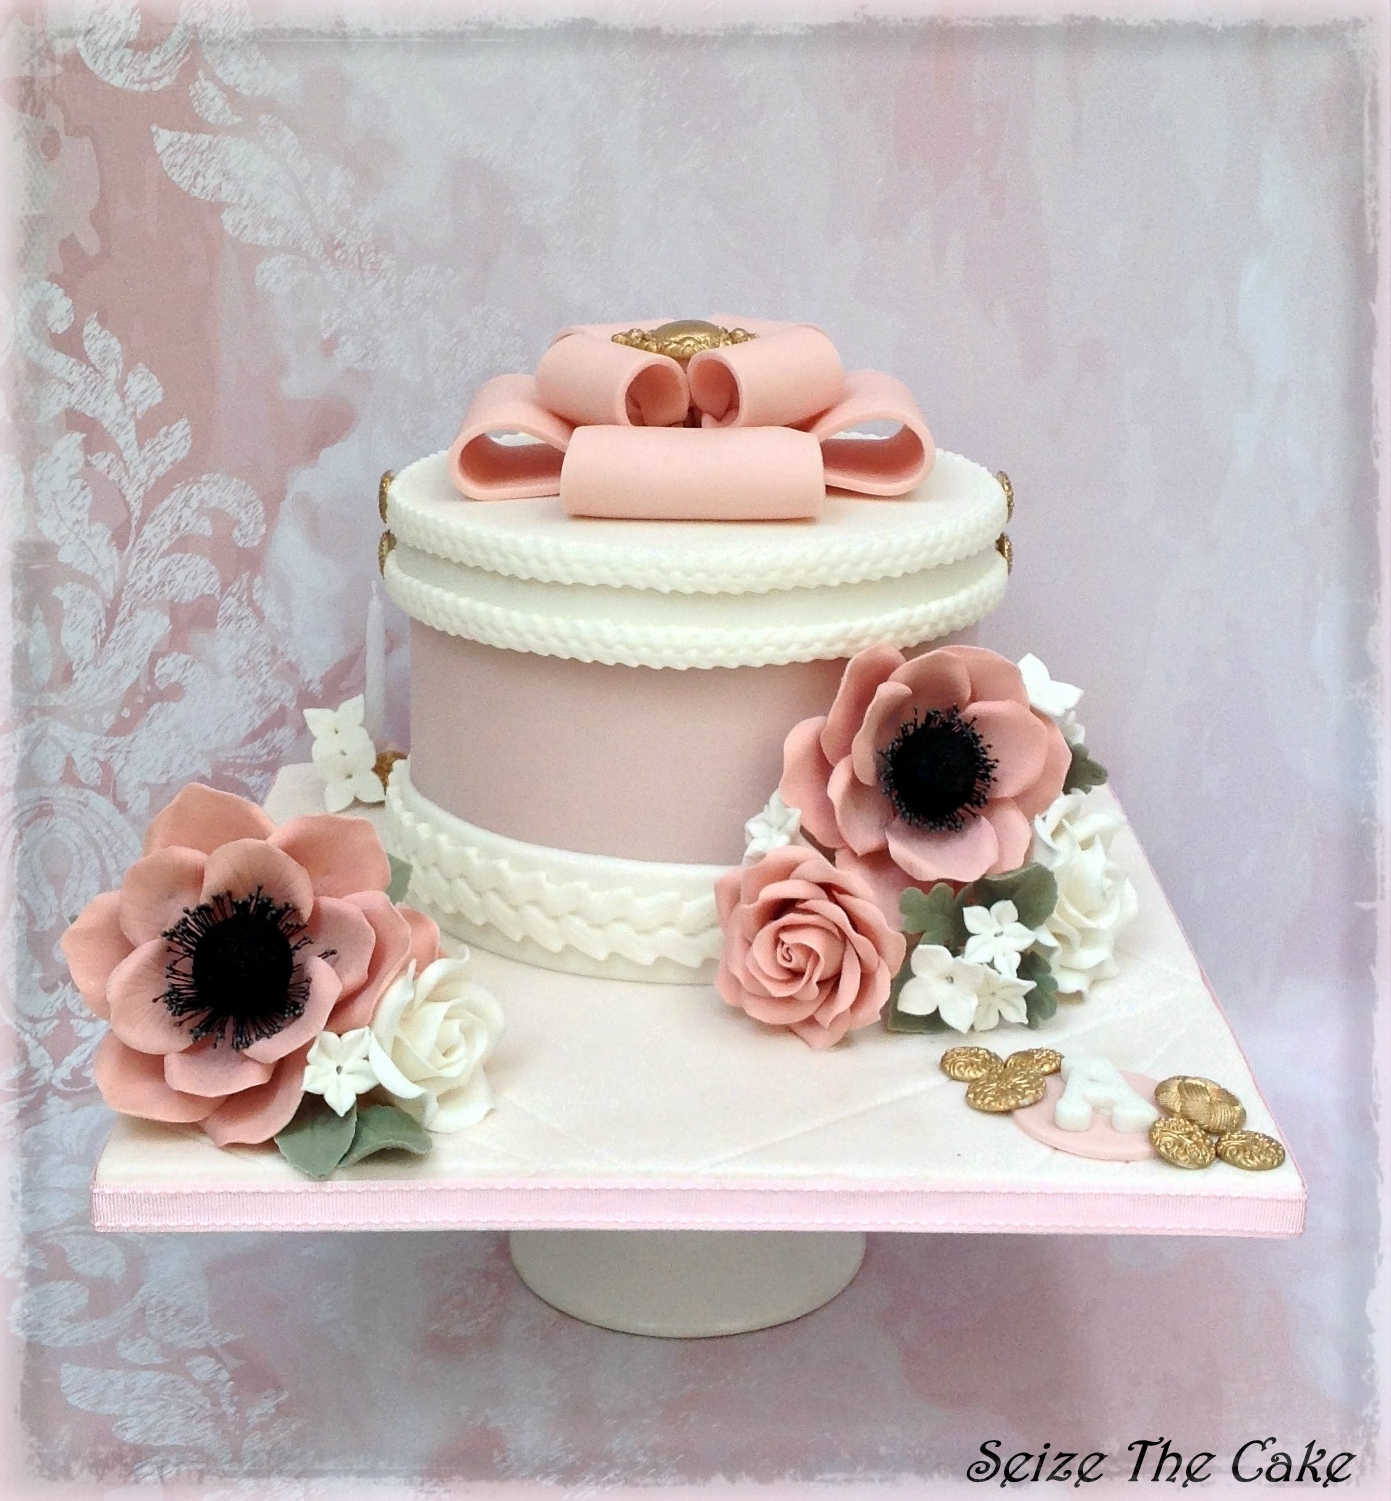 Hatbox Birthday Cake Romantic and classy Hatbox Birthday Cake decorated with handmade sugar anemones and roses.